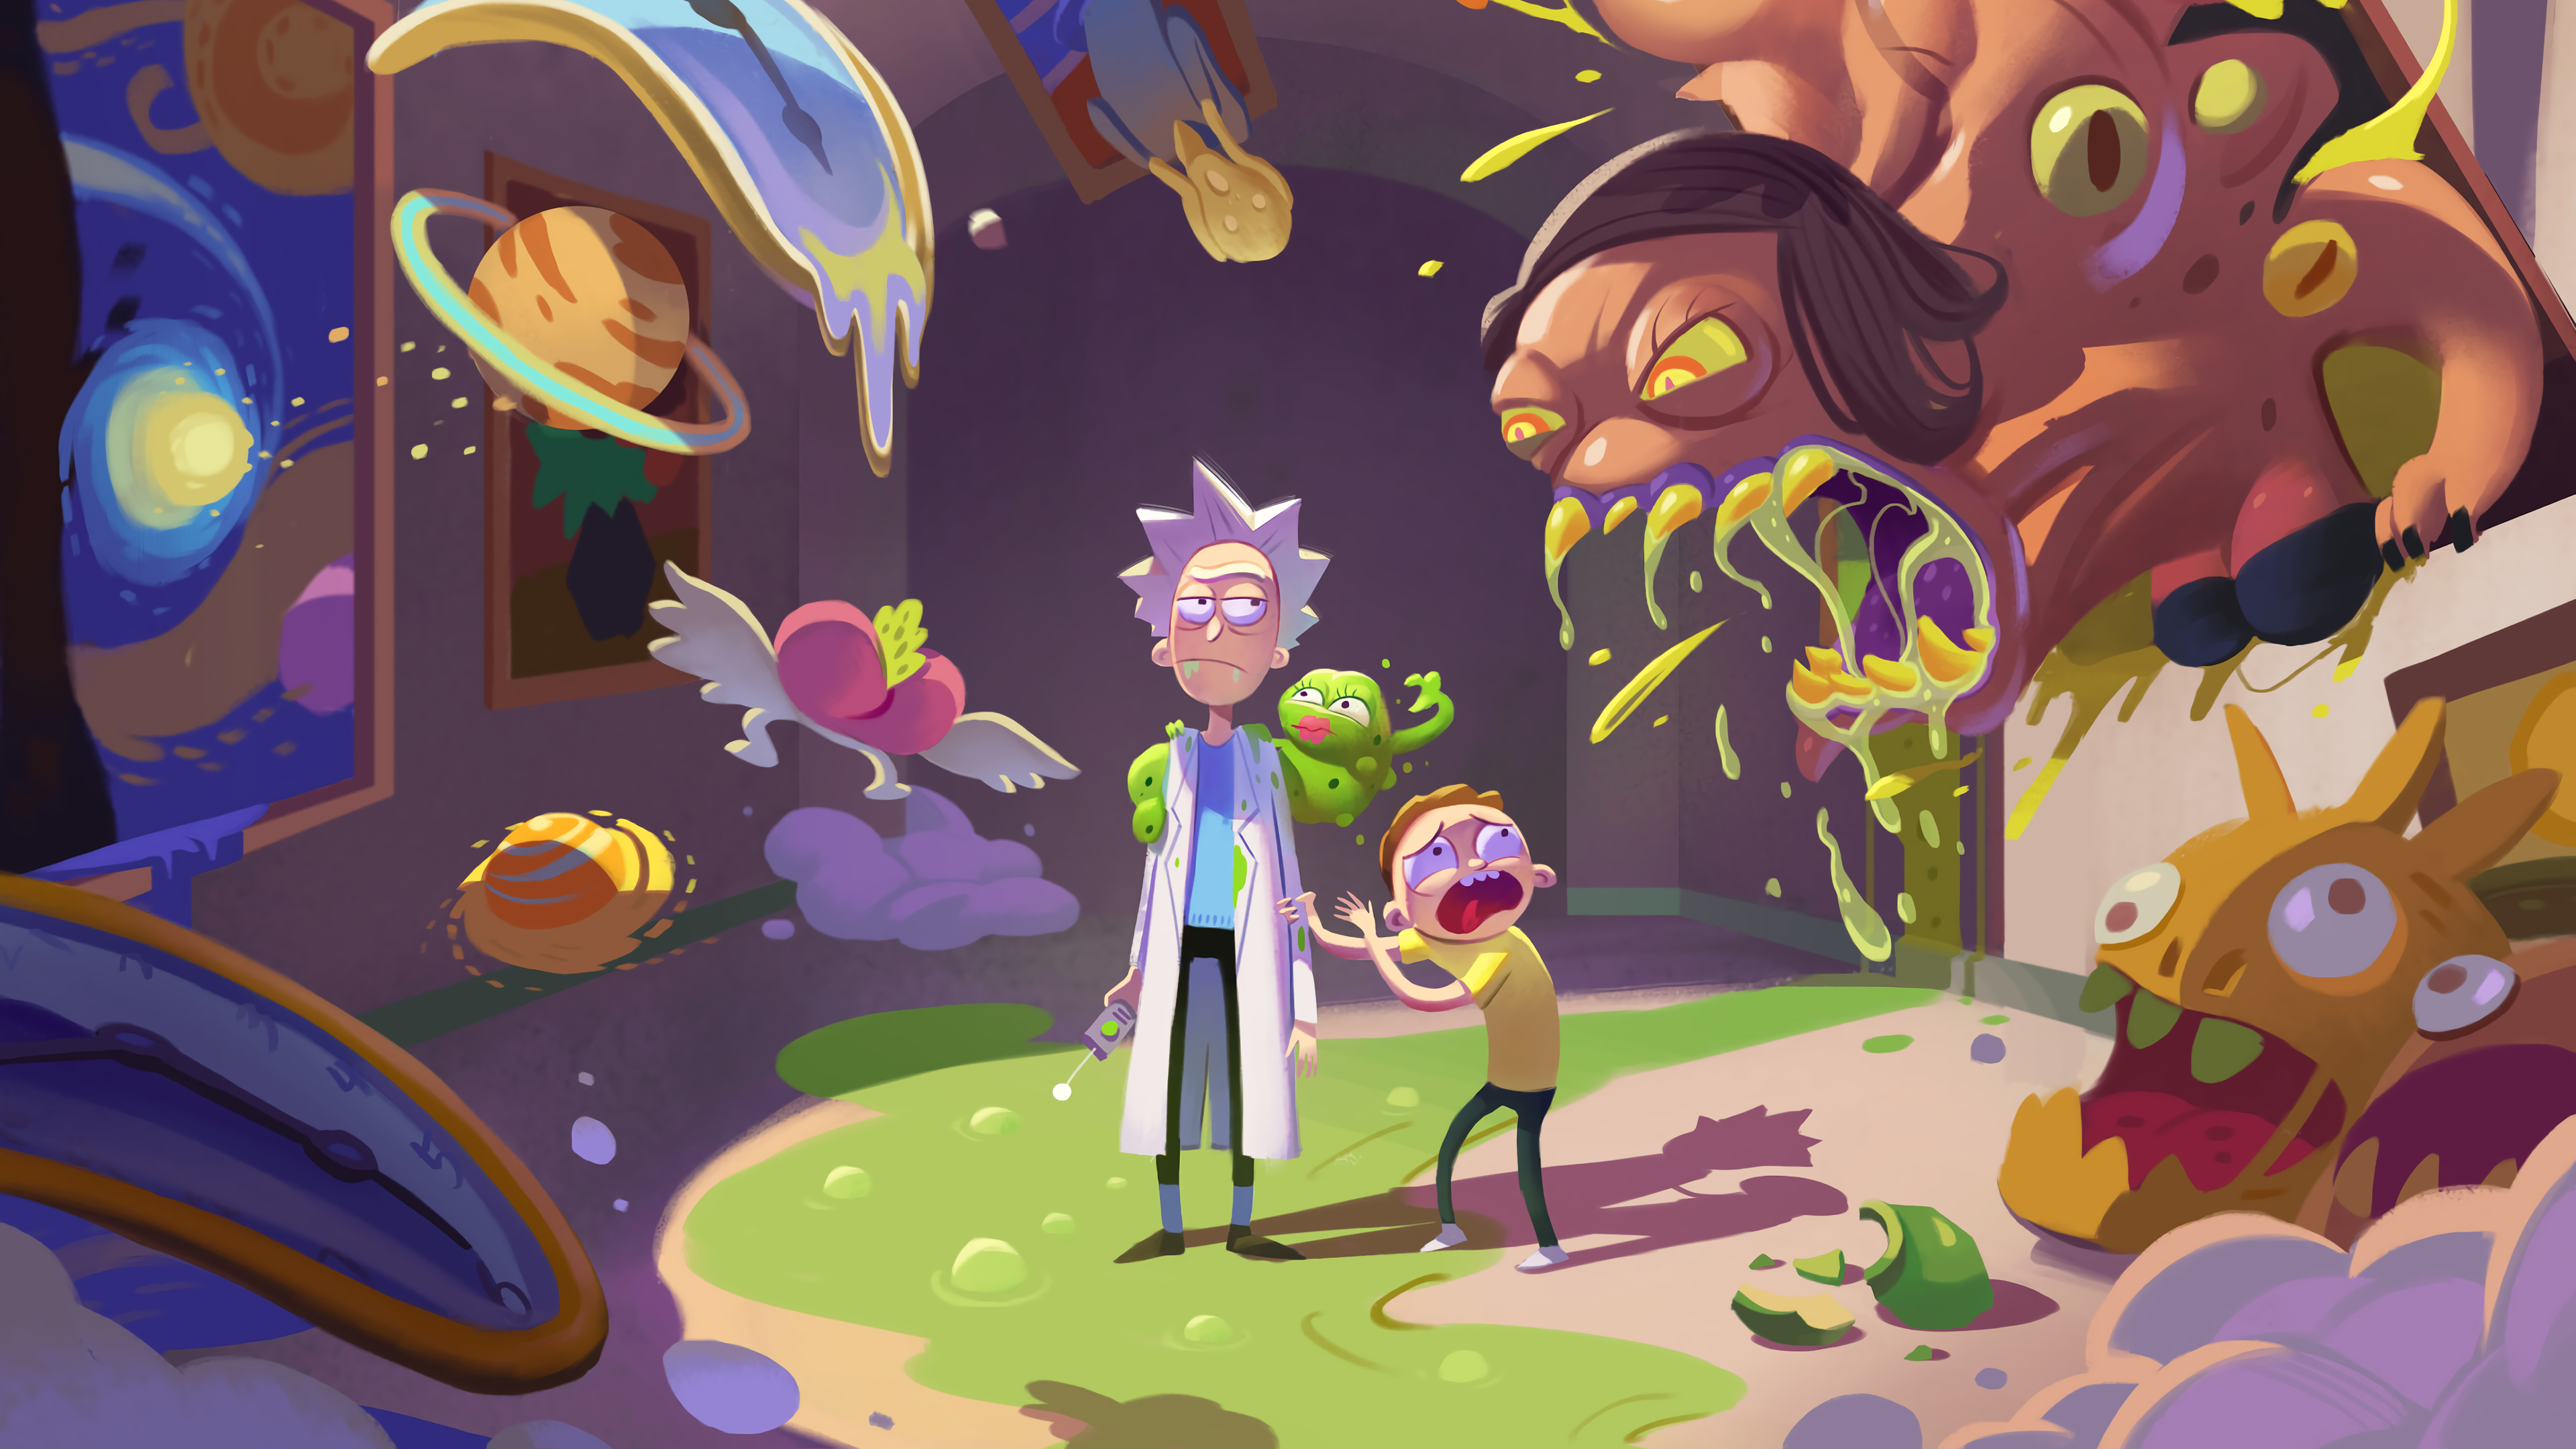 Wallpaper 4k Rick And Morty Season 4 Rick And Morty 4k wallpaper 3840x2160